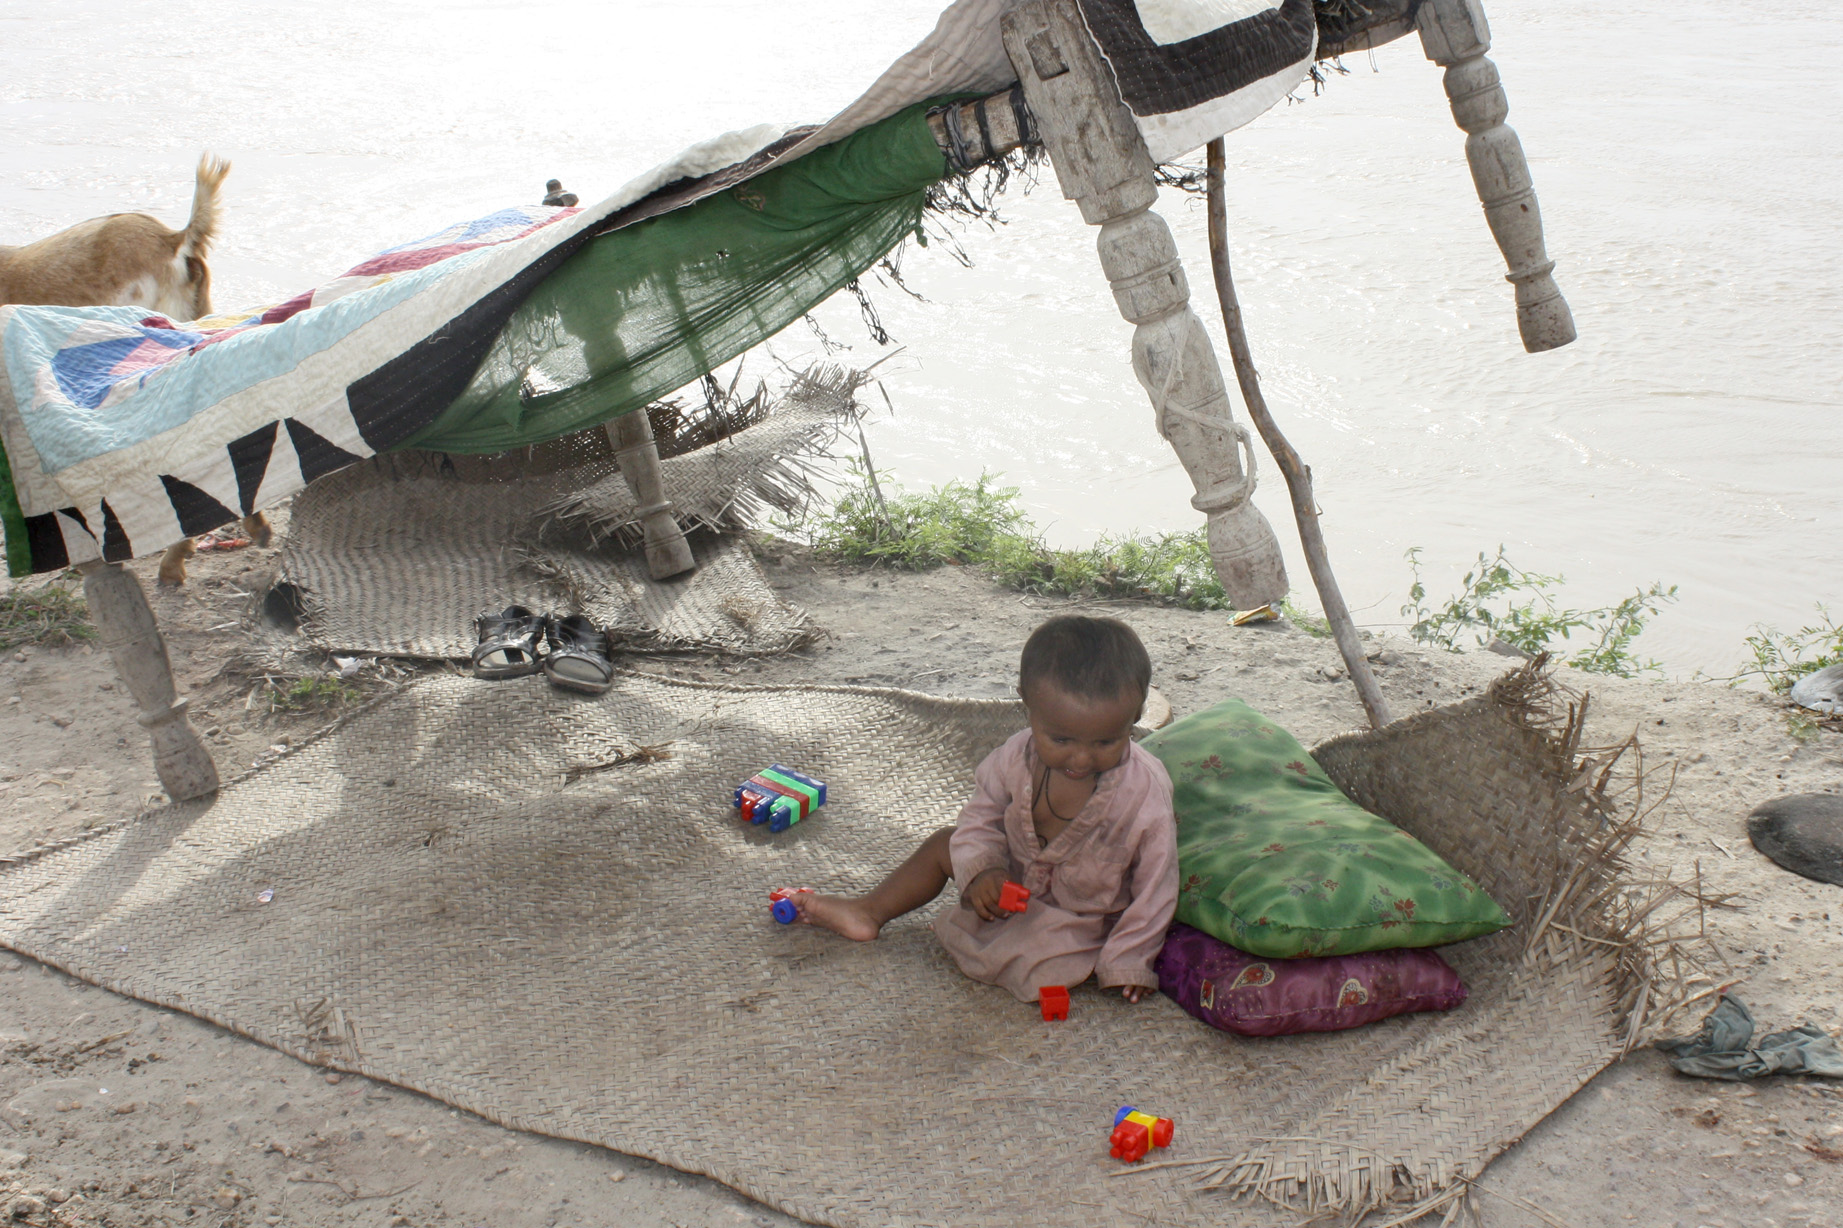 Make-shift shelter - families on an embankment along the river Indus in Sindh province